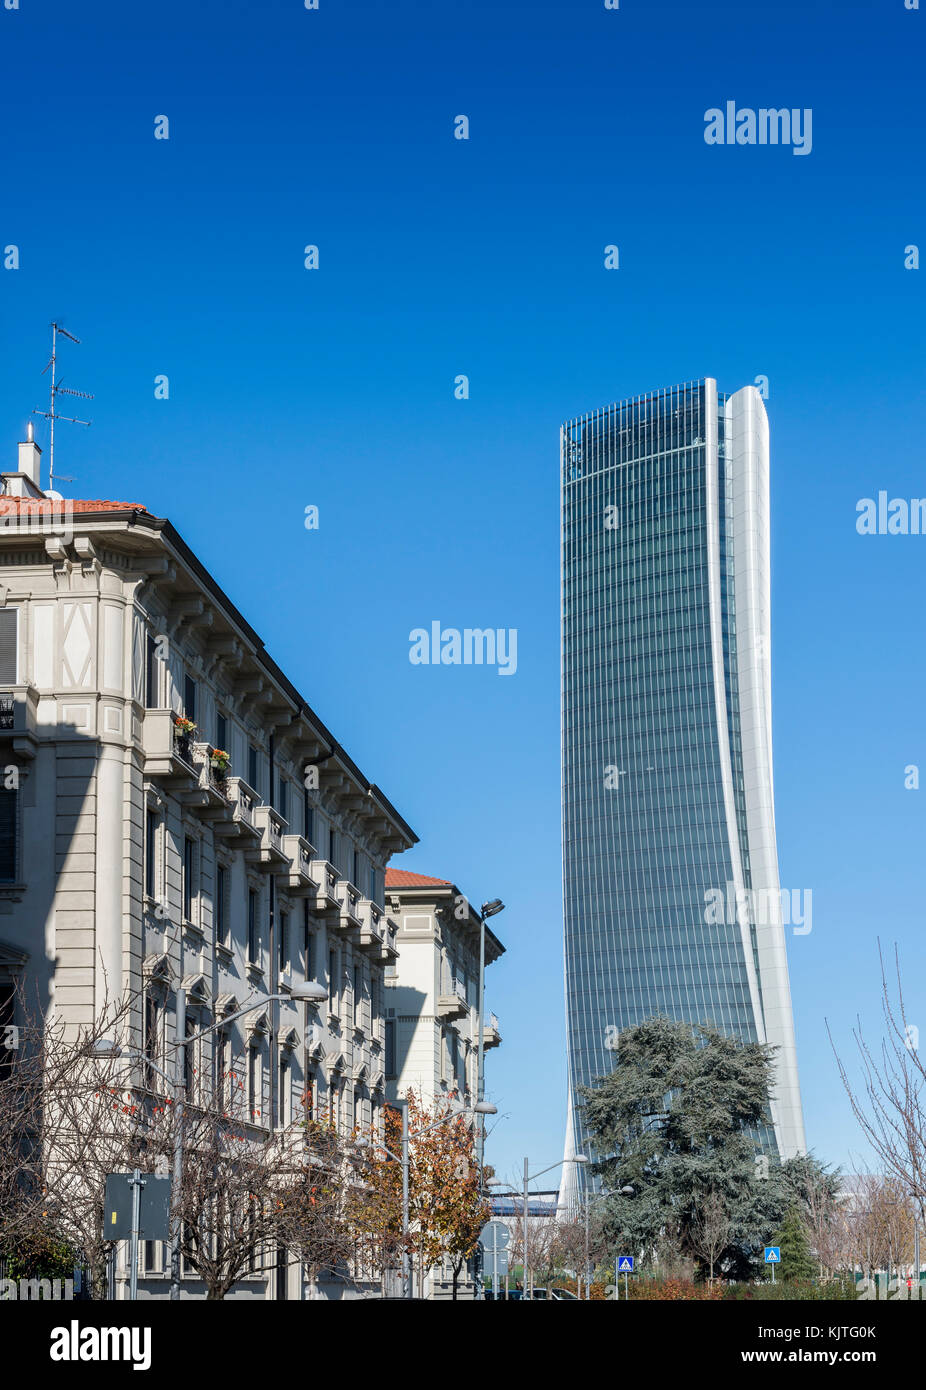 Italy, Lombardy, Milan, Skyline - Hadid Tower called Lo Storto with traditional architecture on left foreground - Stock Image